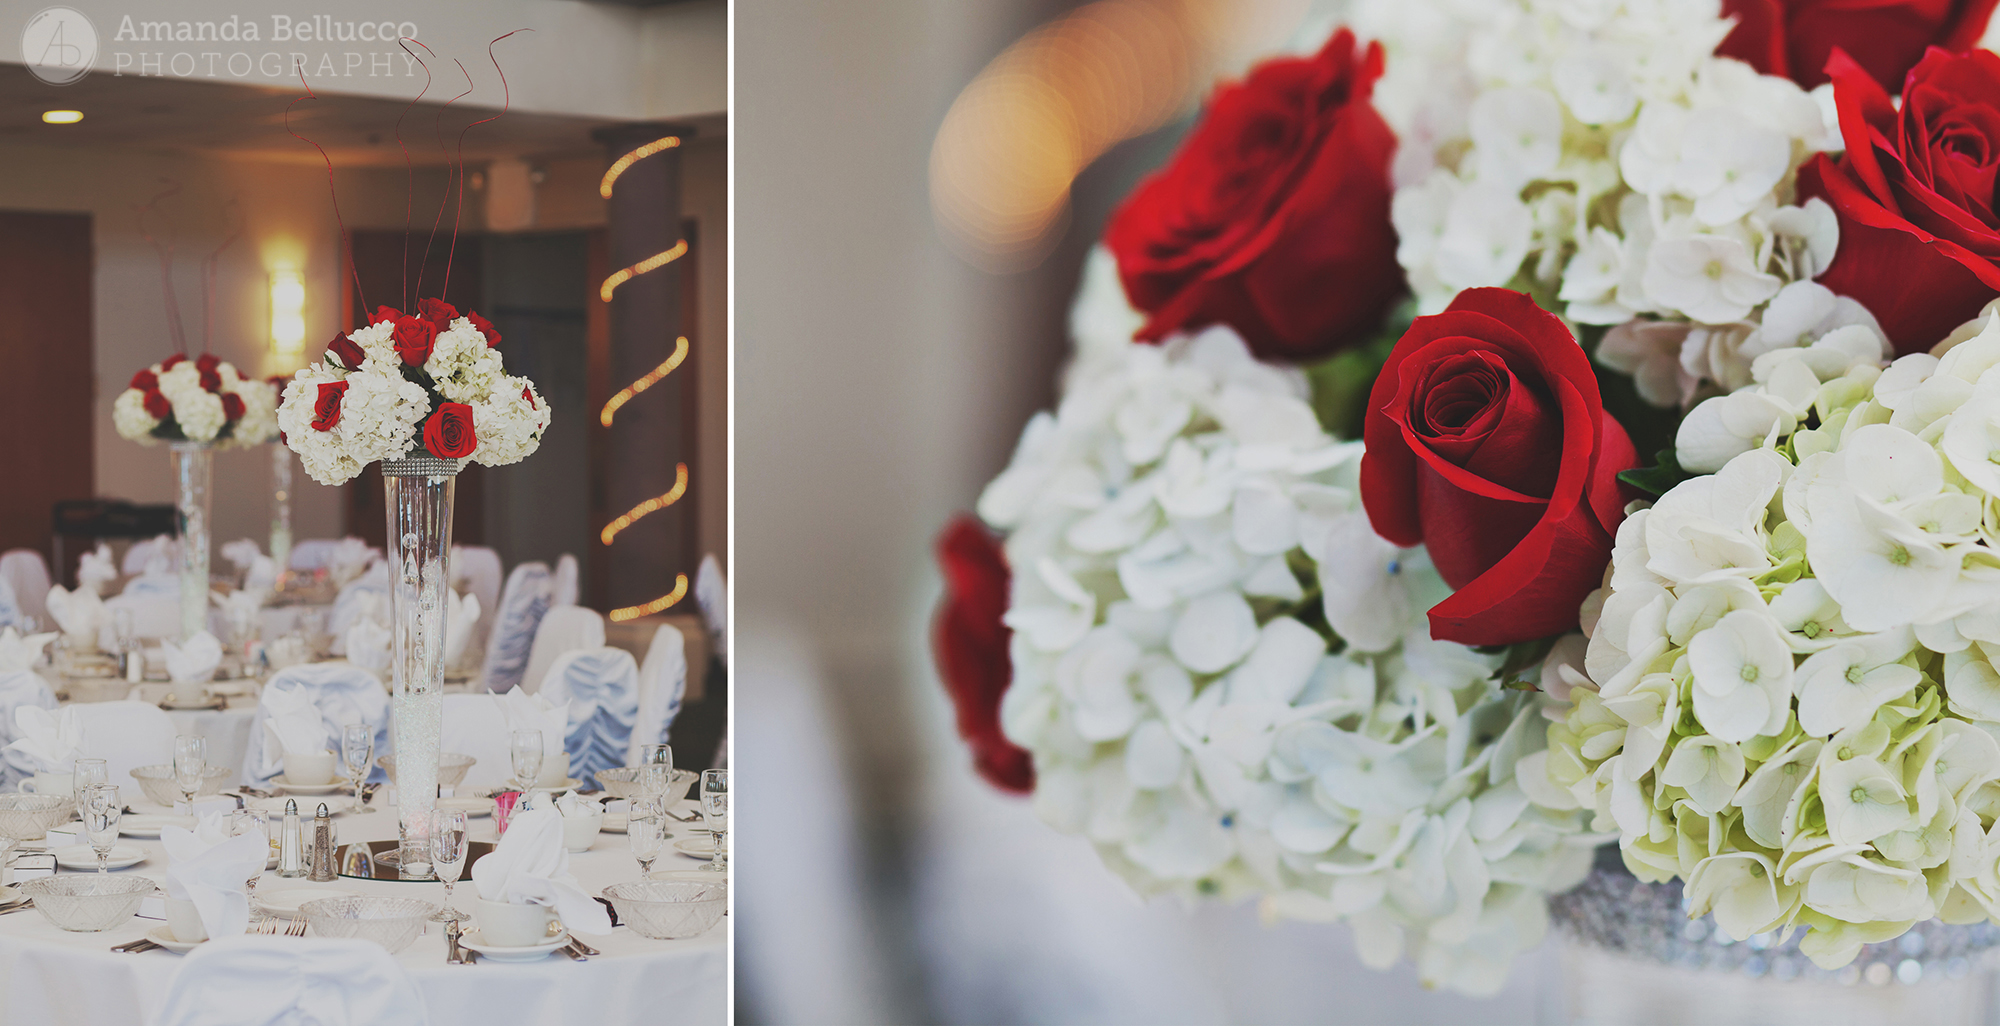 Gorgeous floral centerpieces for the reception at the Italian American Community Center.